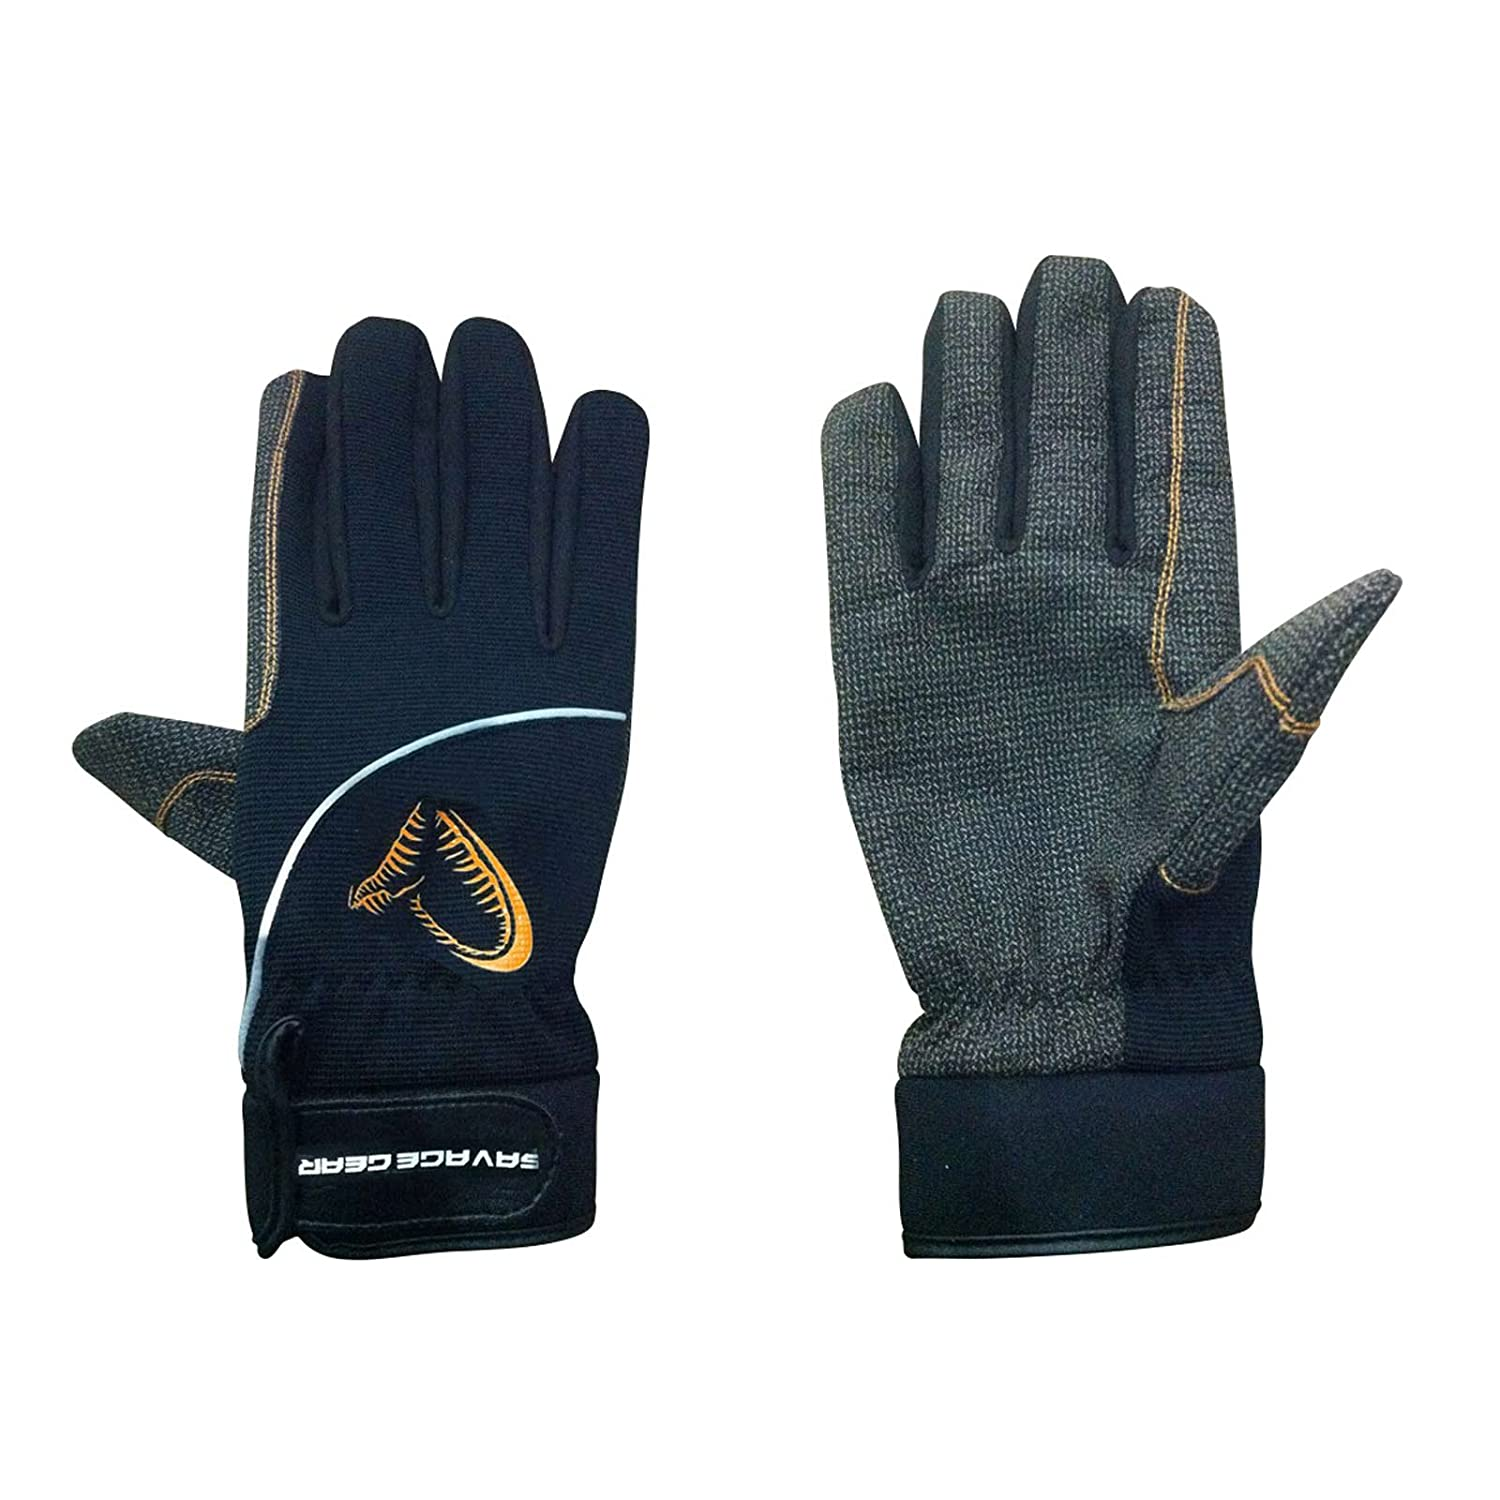 Savage Gear Shield Gloves**All Sizes**Pike Predator Handling Protection Gloves